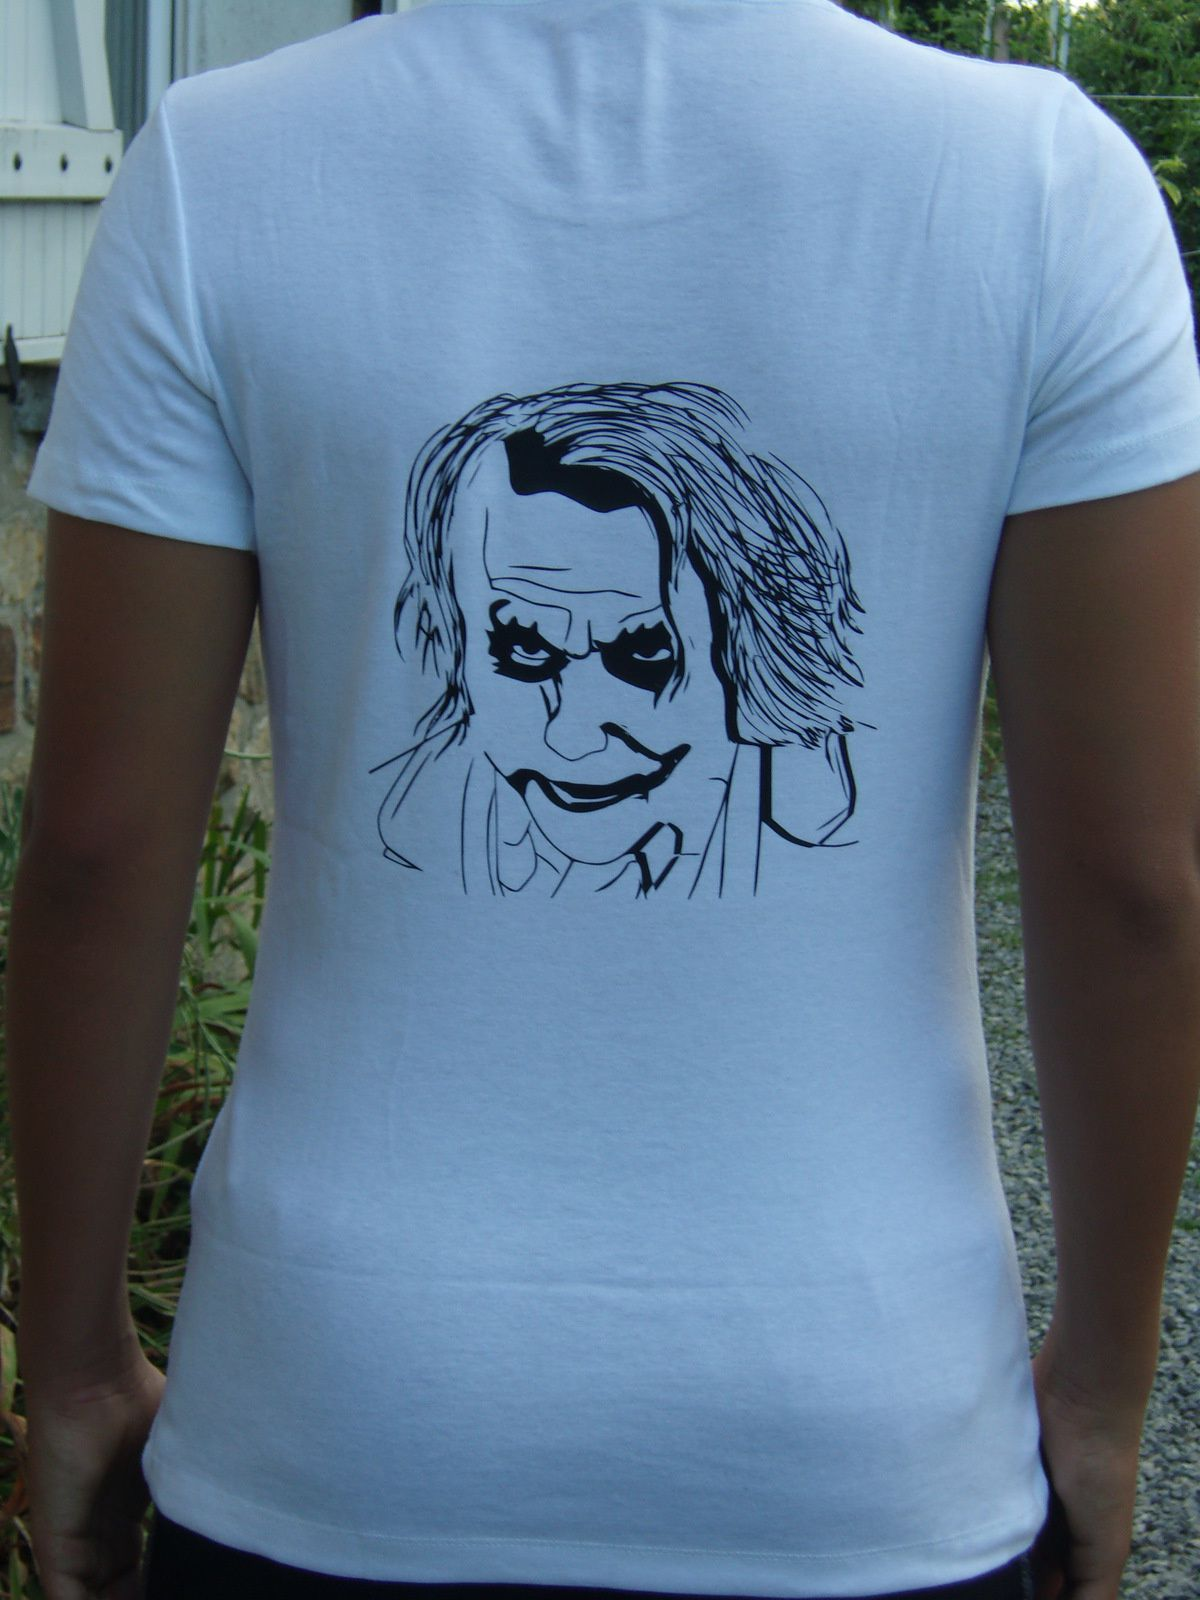 Flocage t shirt personnalis lesdeliresdecalis - Papier flocage tee shirt ...